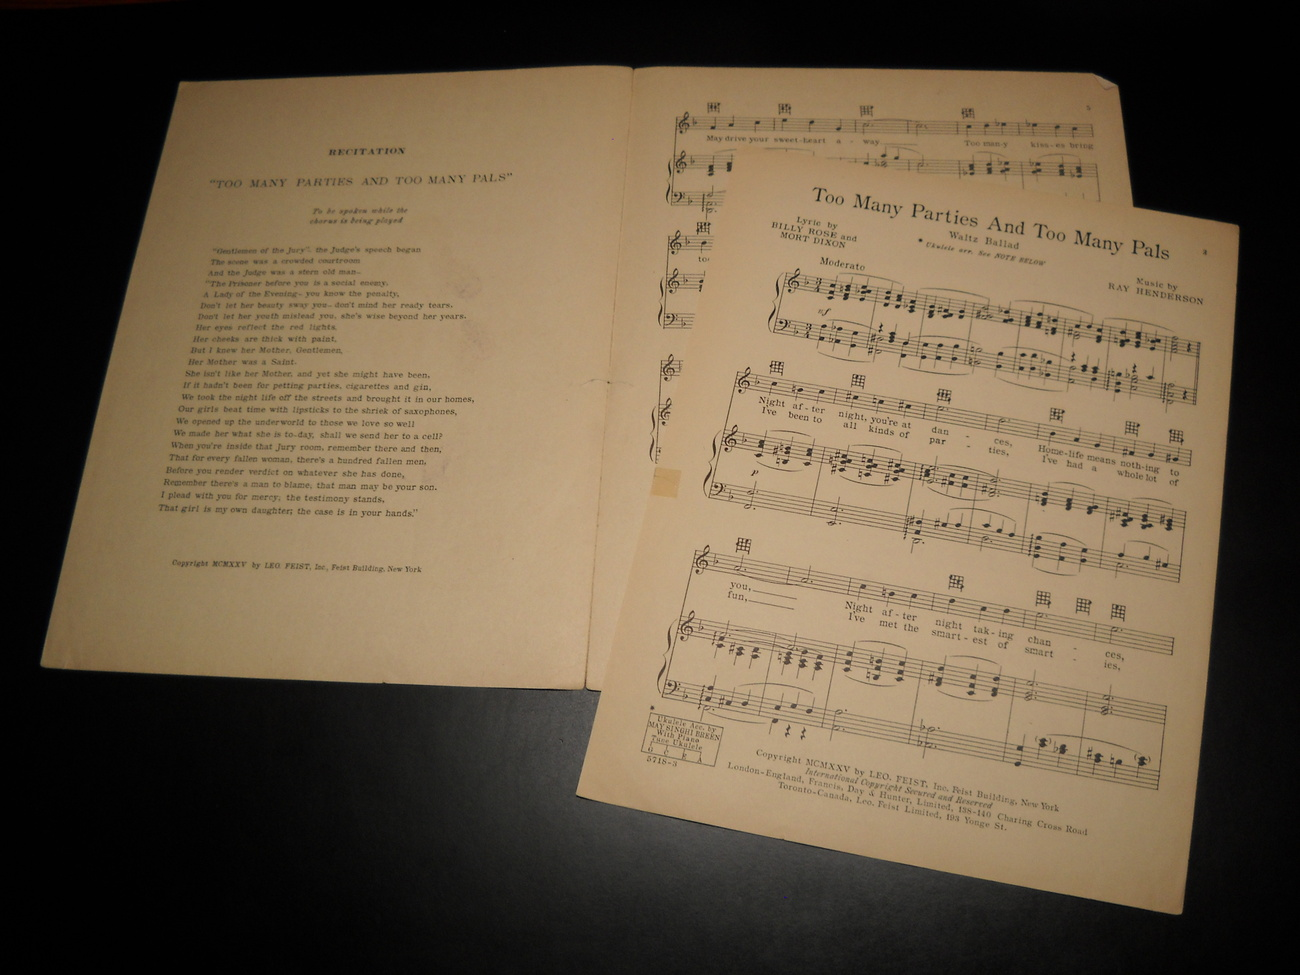 Sheet_music_too_many_parties_and_too_many_pals_helen_moretti_billy_rose_1925_leo_feist_05